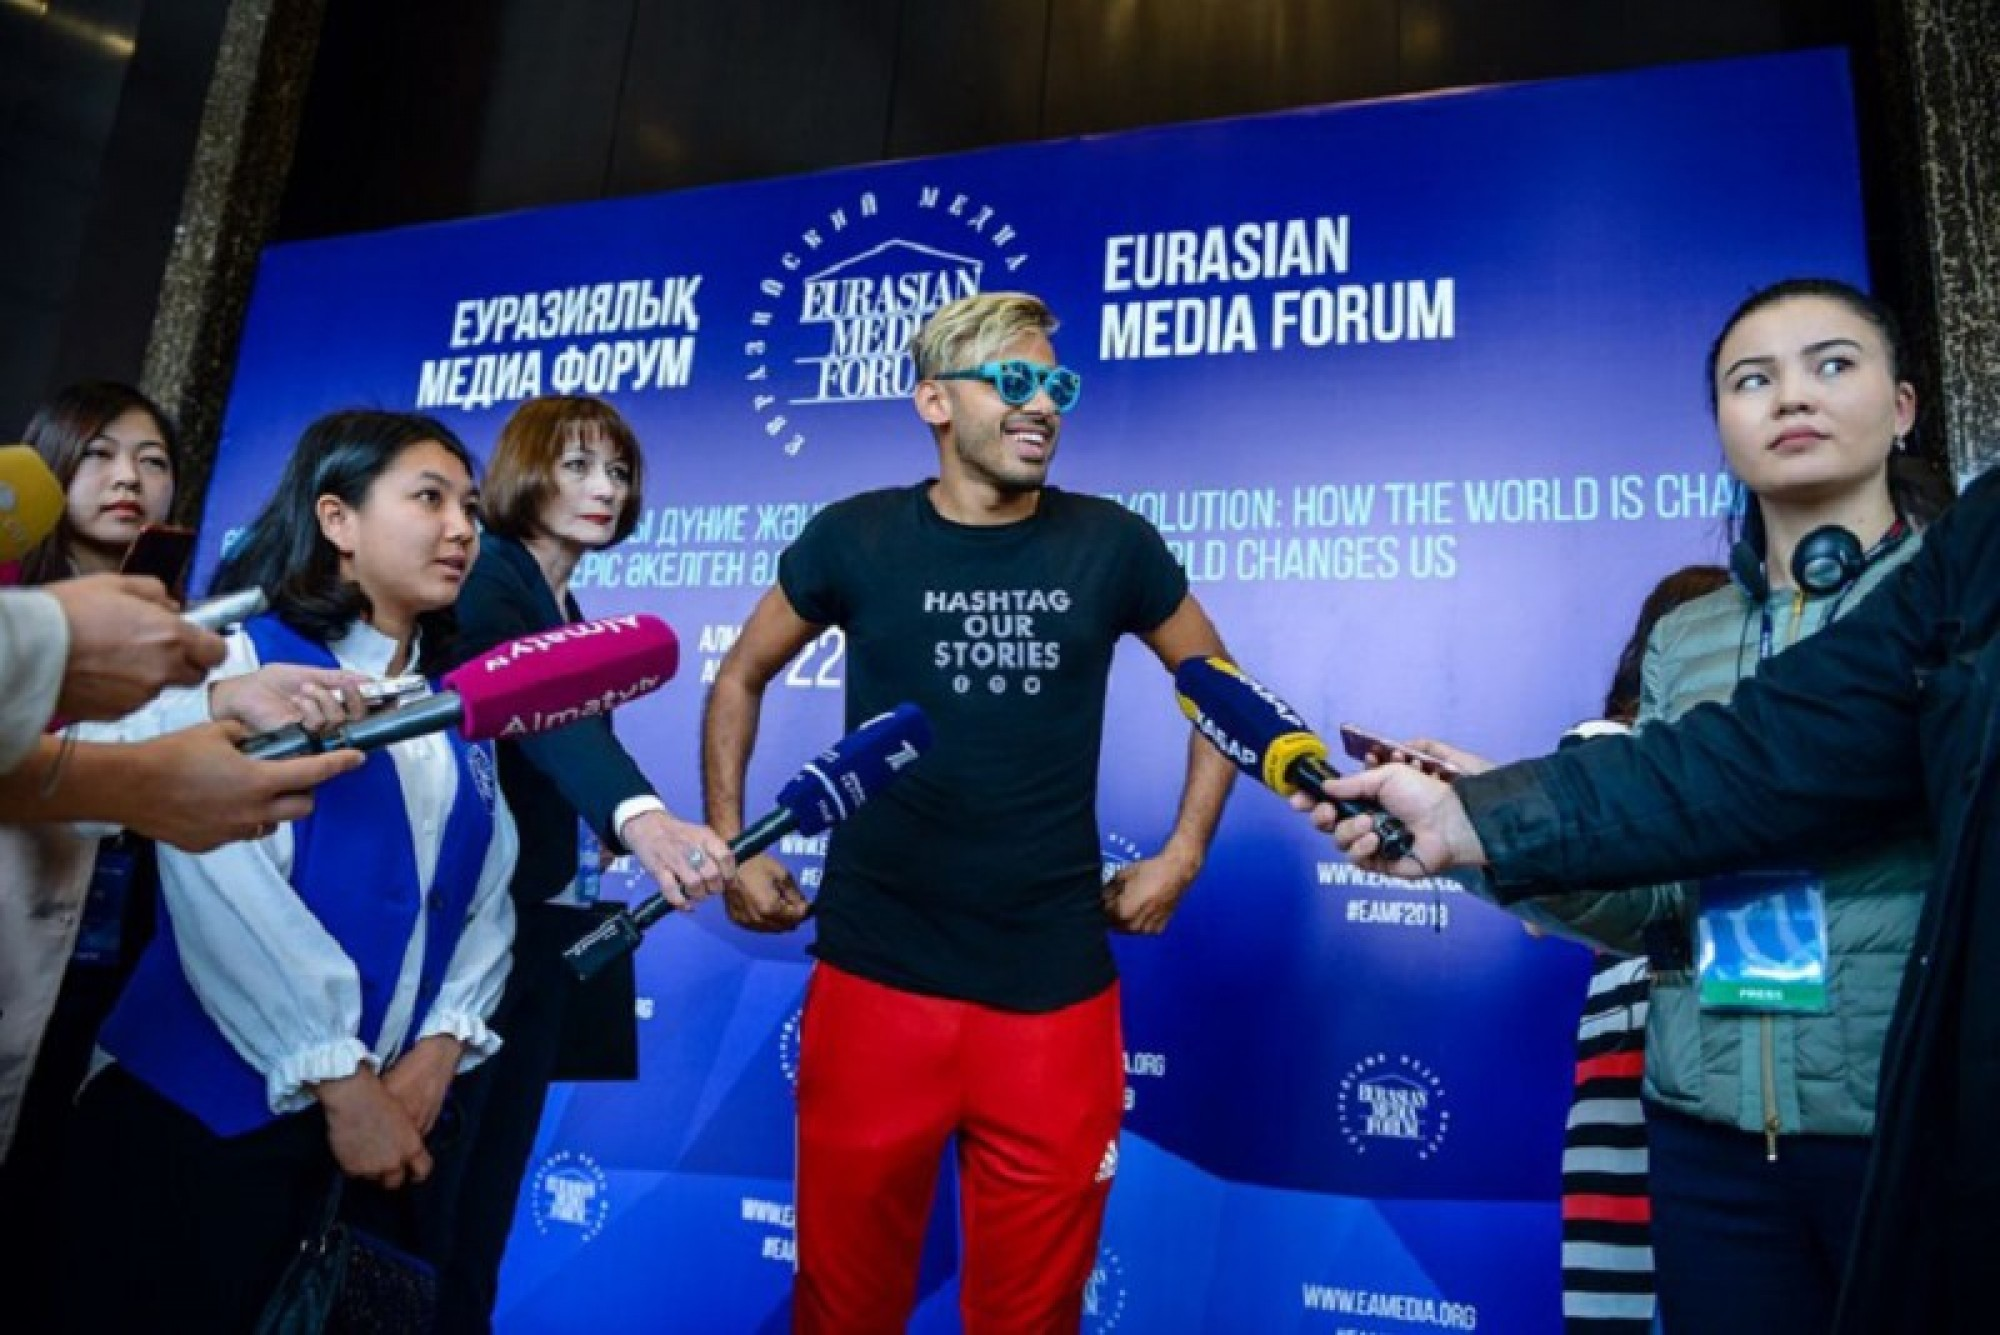 Experts to Discuss Modern Media Trends at 16th Eurasian Media Forum in Almaty